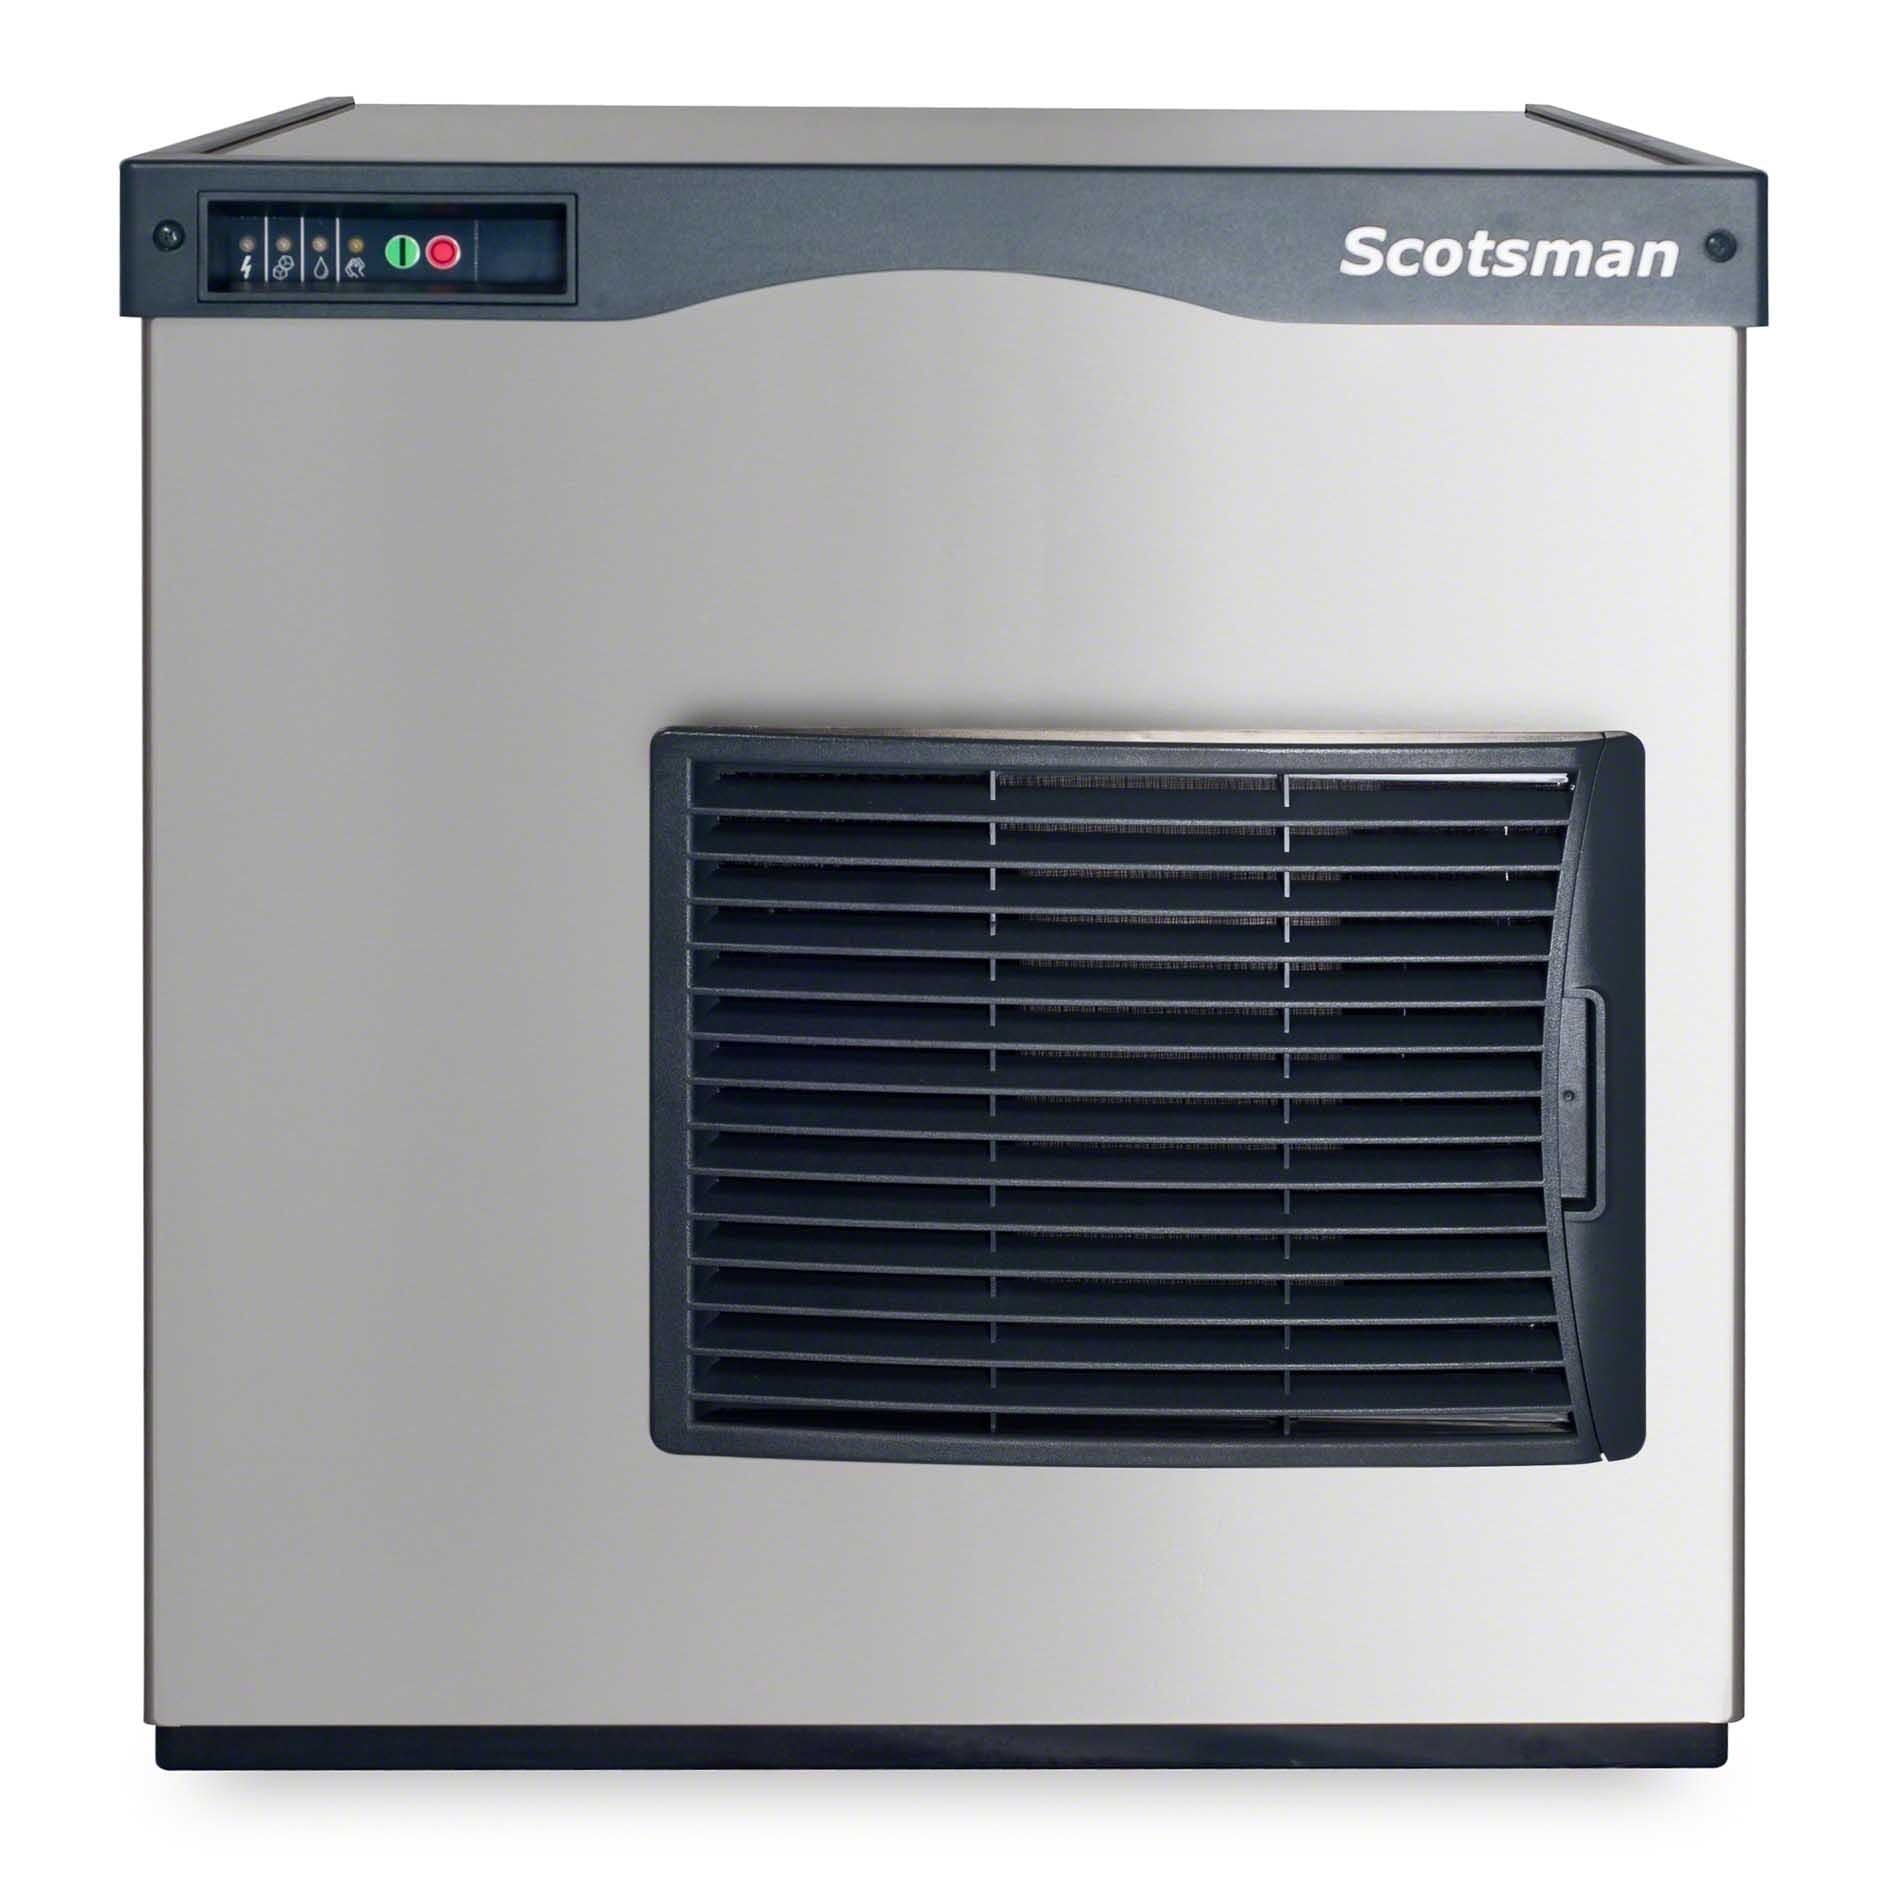 Scotsman - N0622A-1A 643 lb Nugget Ice Machine - Prodigy Series - sold by Food Service Warehouse